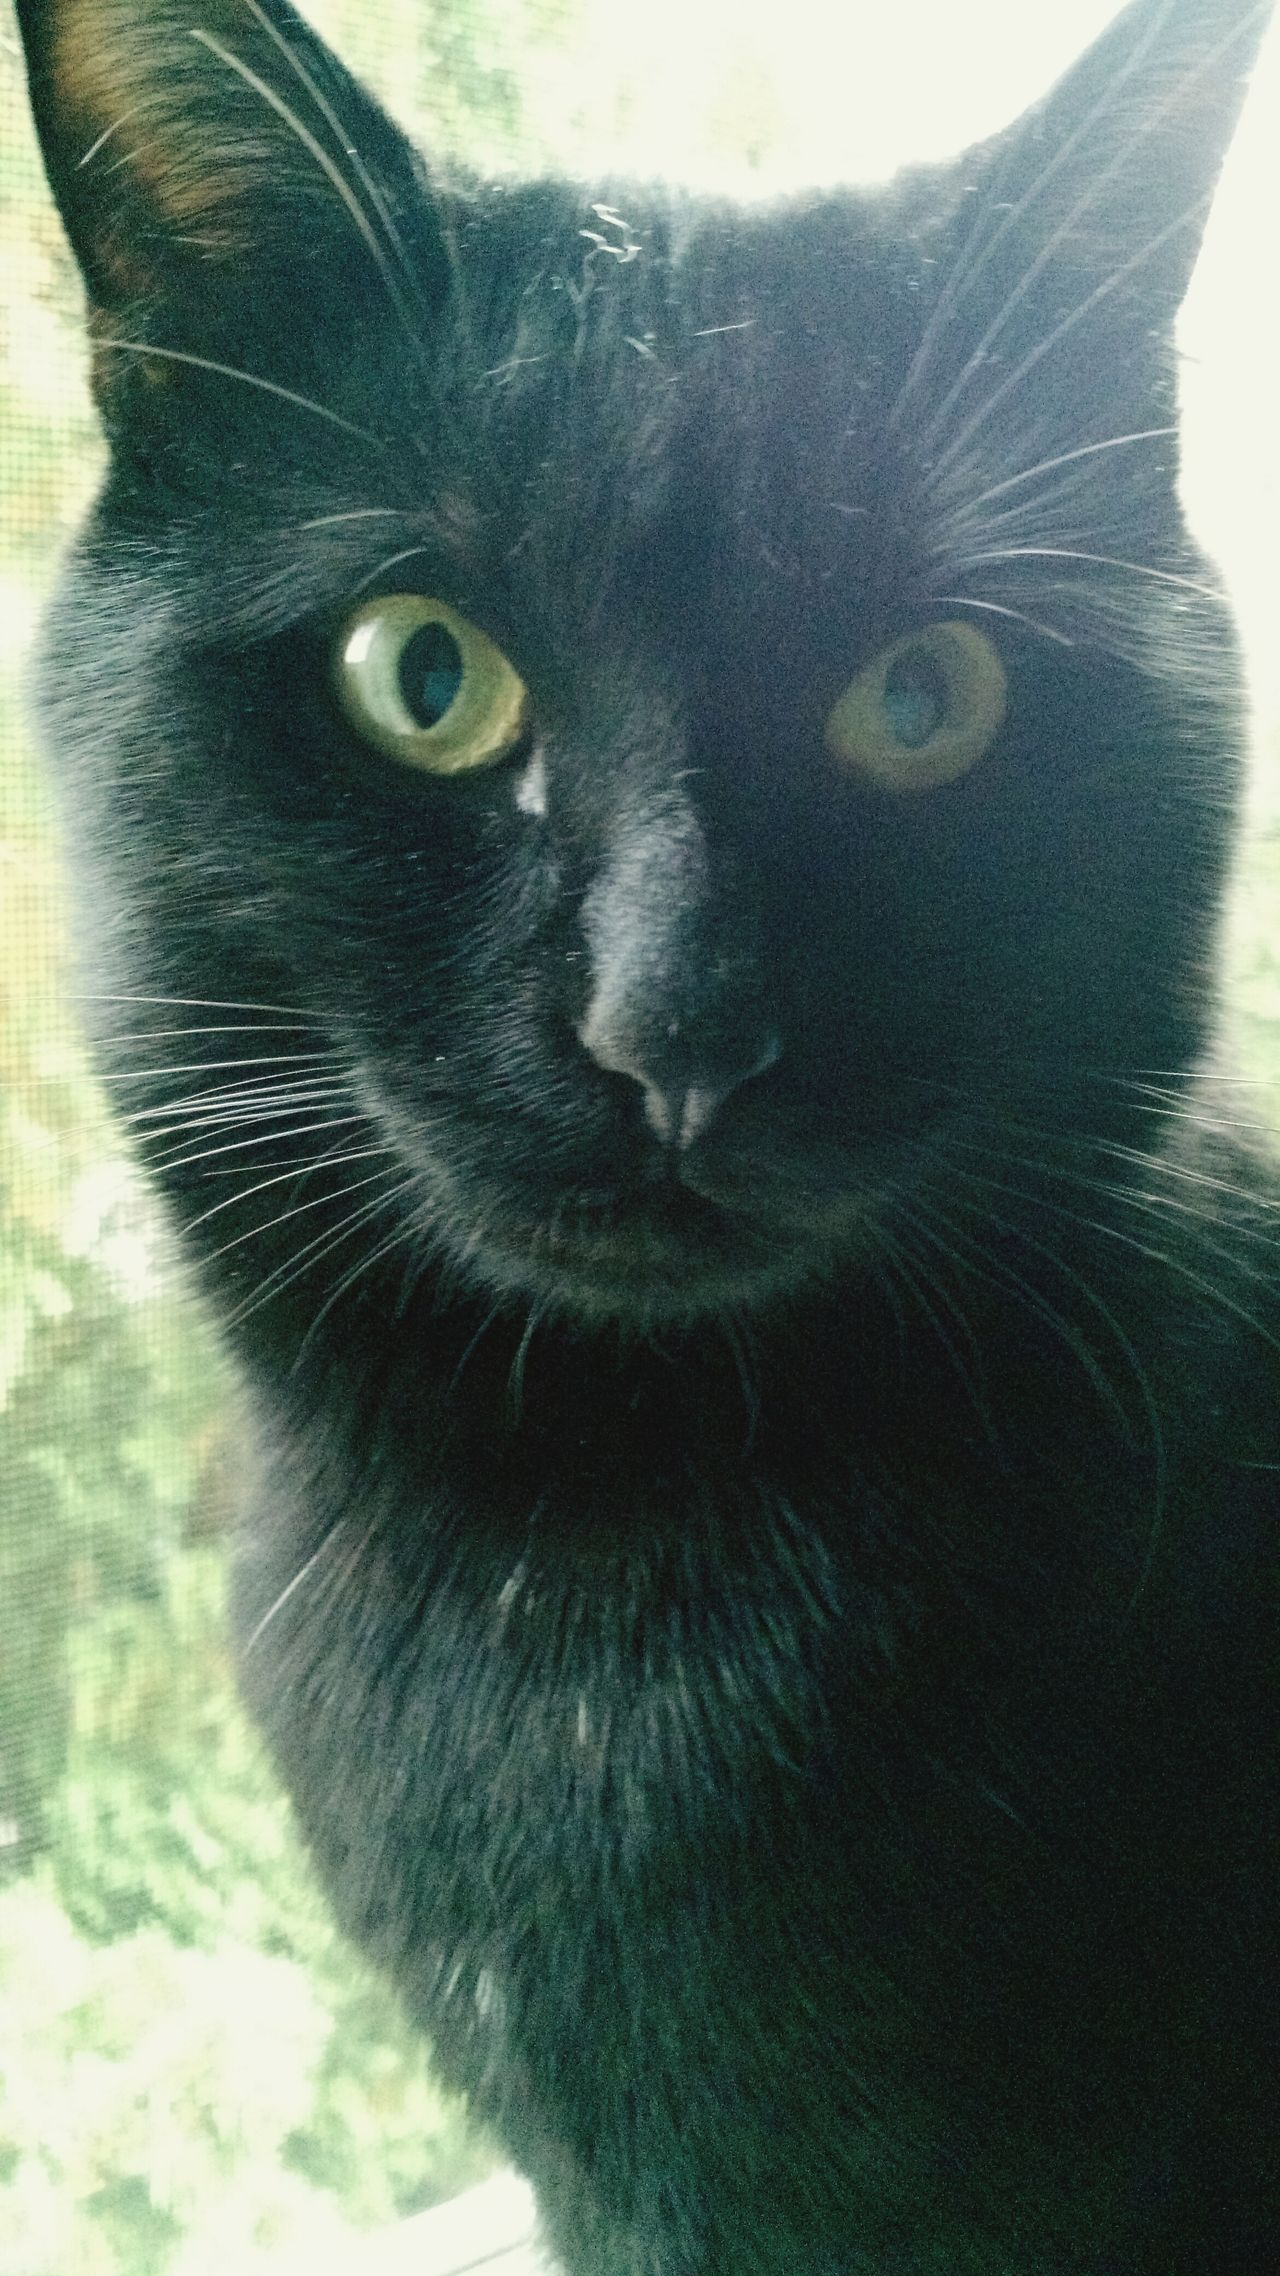 One Animal Looking At Camera Portrait Animal Themes Domestic Animals Pets Close-up Mammal Animal Body Part Front View No People Animal Eye Day Animal Nose Yellow Eyes Outdoors Black Cats Are Beautiful